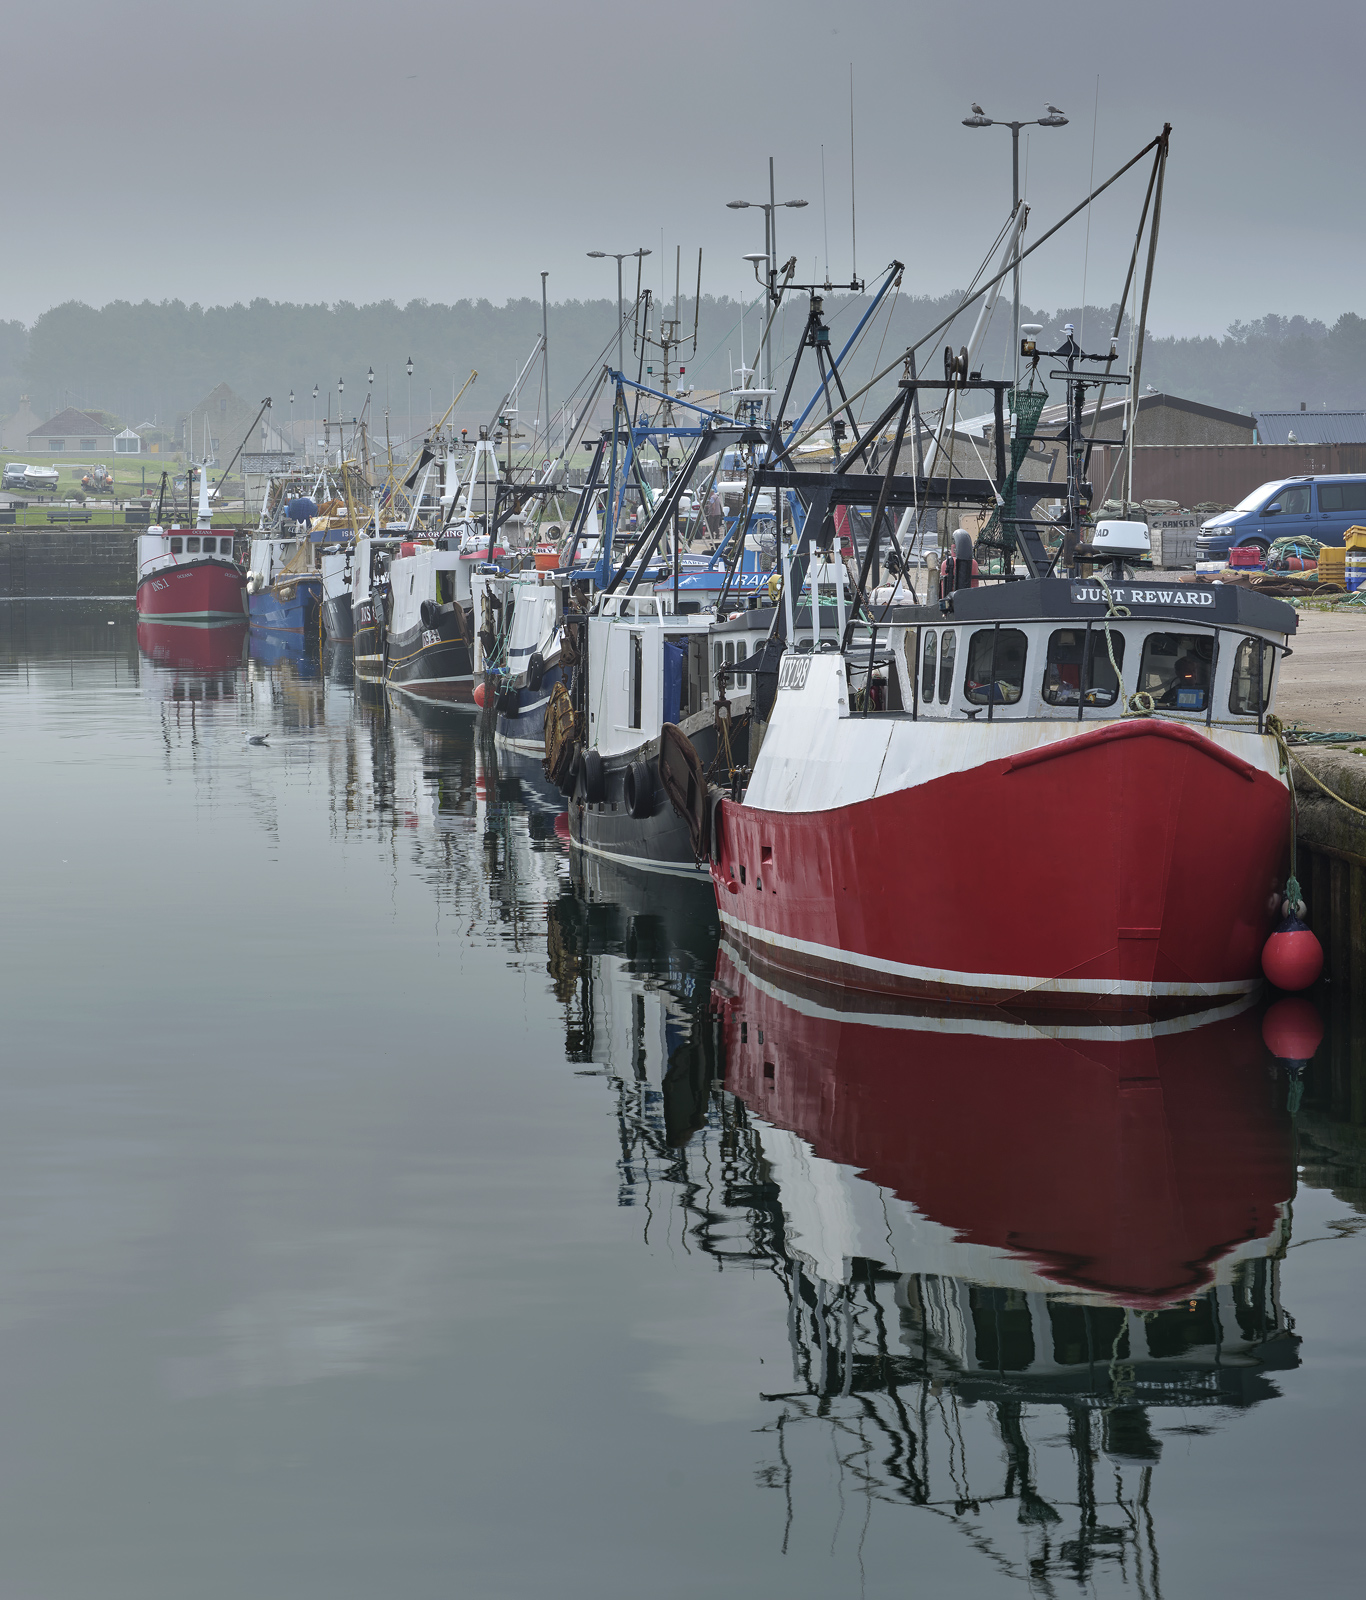 Trawler Parade, Burghead, Moray, Scotland, trawler, boats, quay, curved, line, still, coast, faint, mist, reflections  , photo